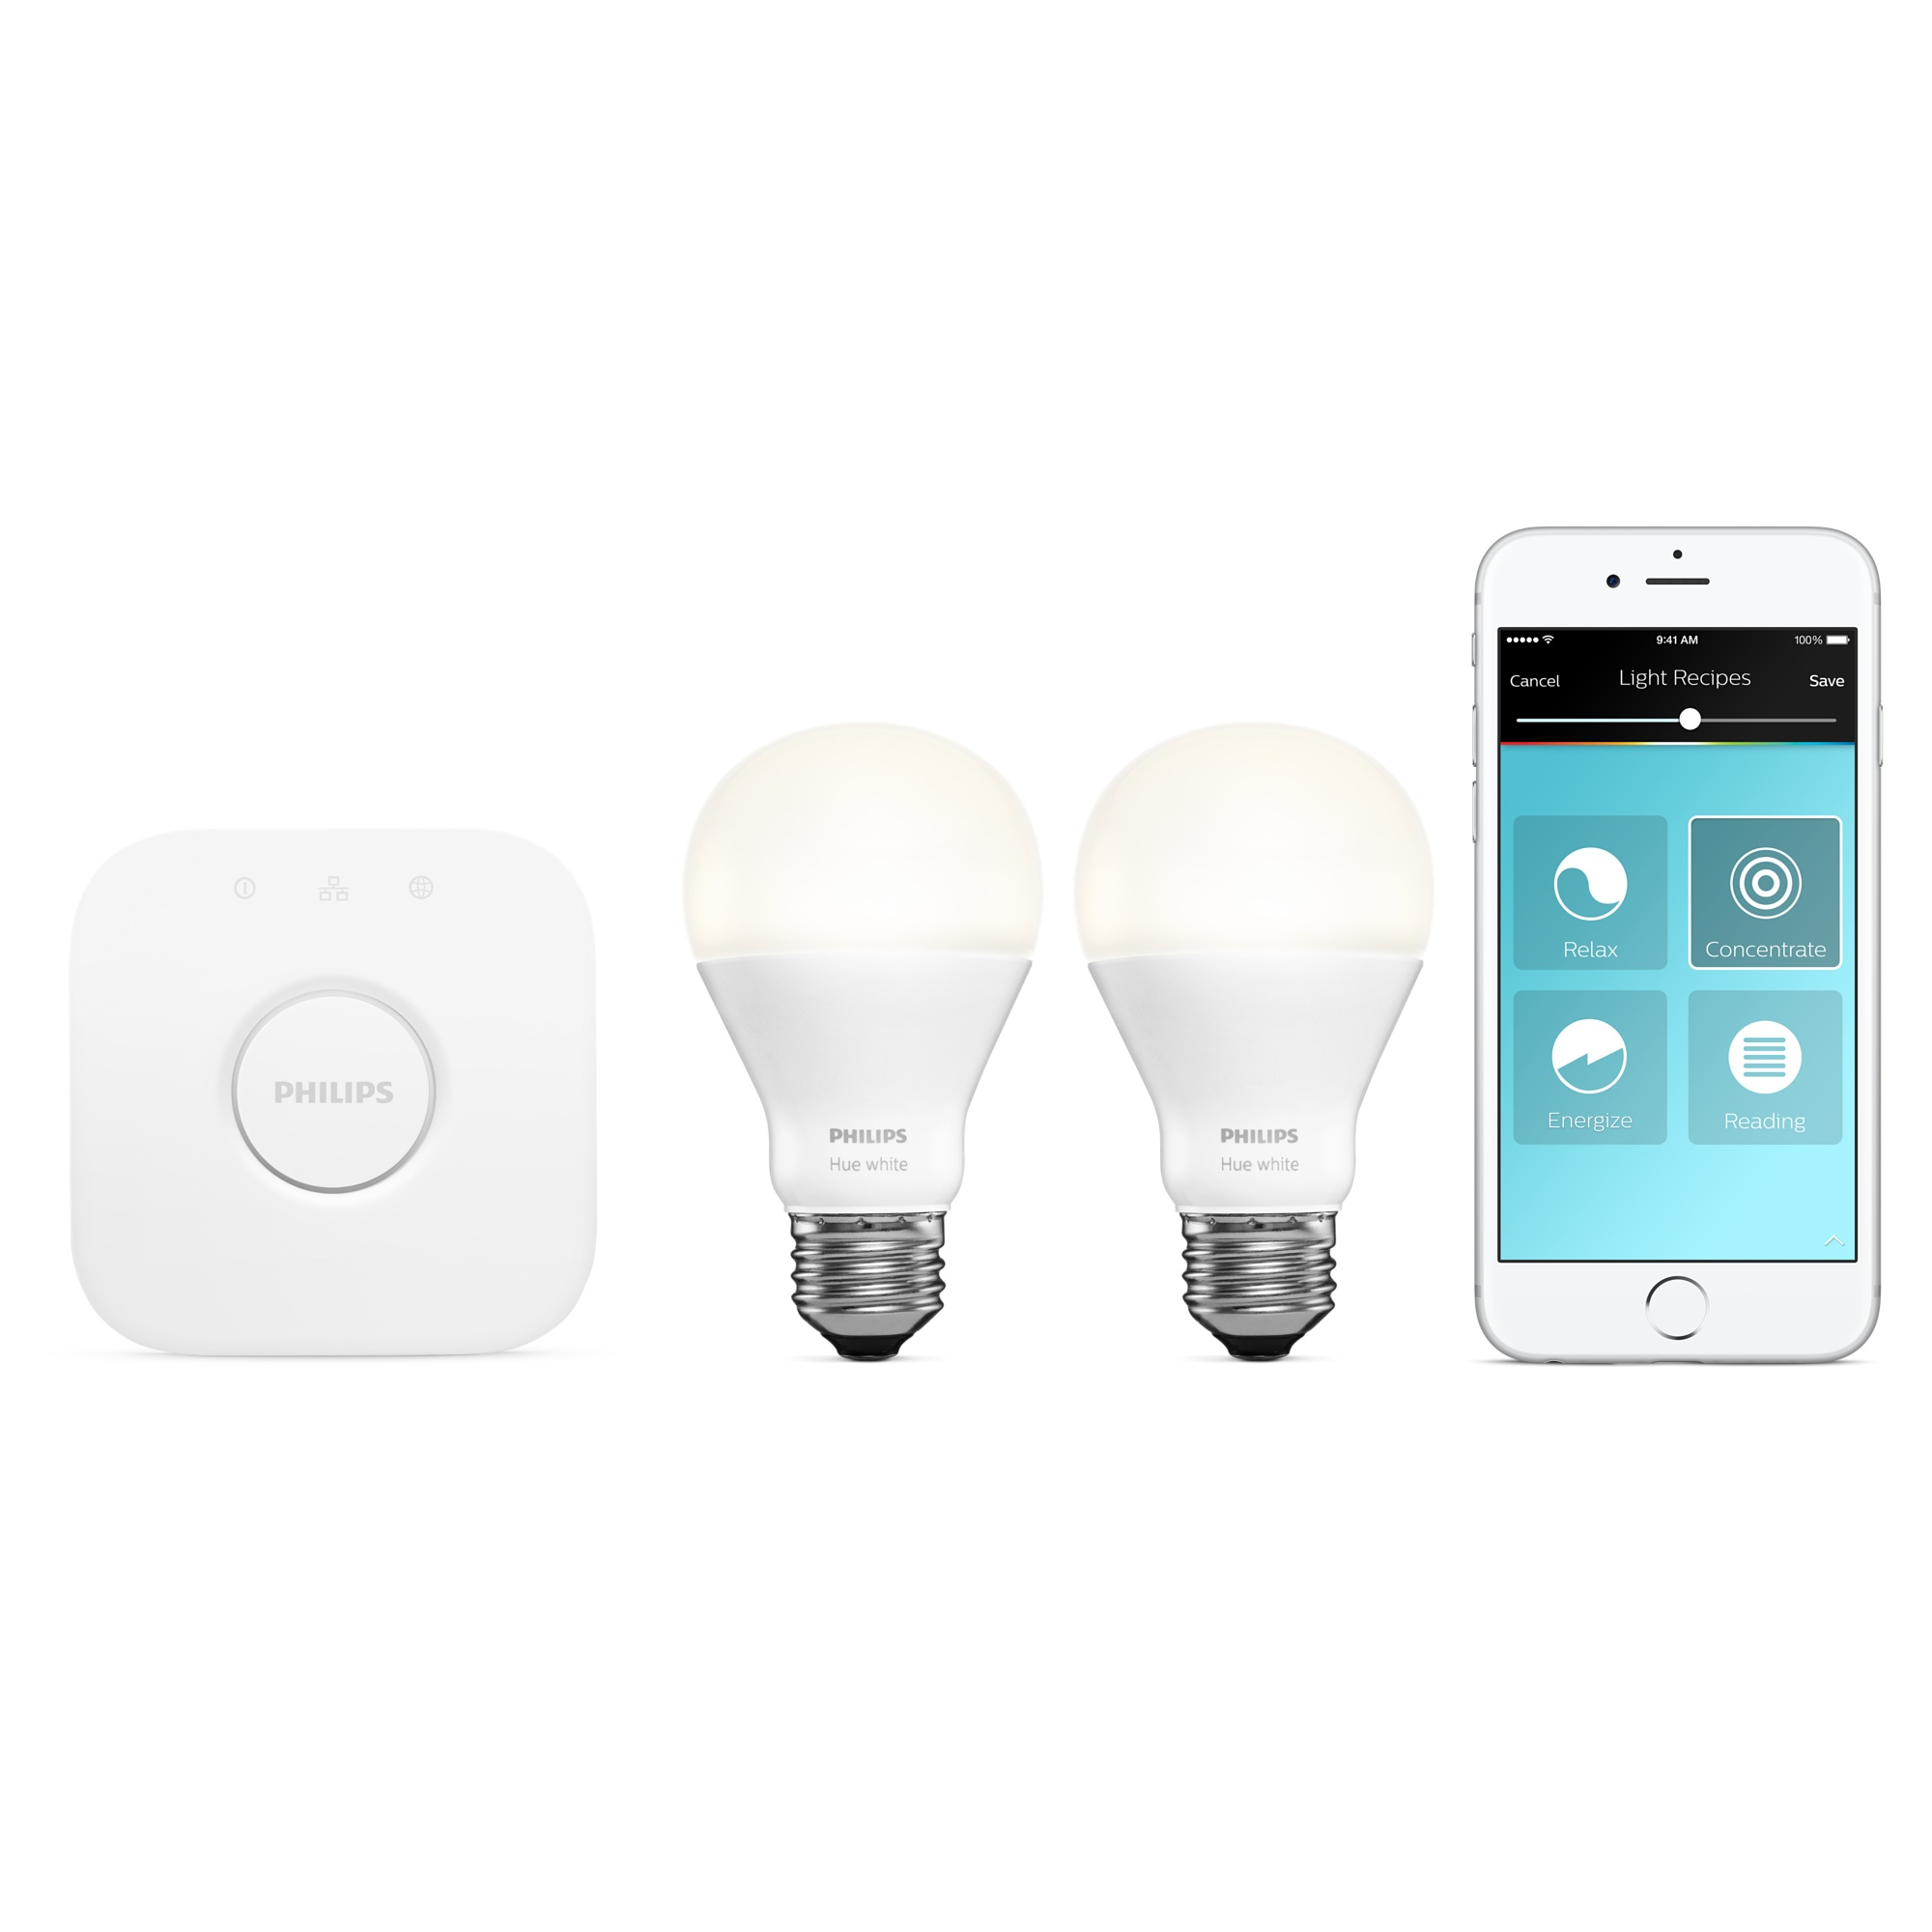 find smart home automation accessories best homekit. Black Bedroom Furniture Sets. Home Design Ideas